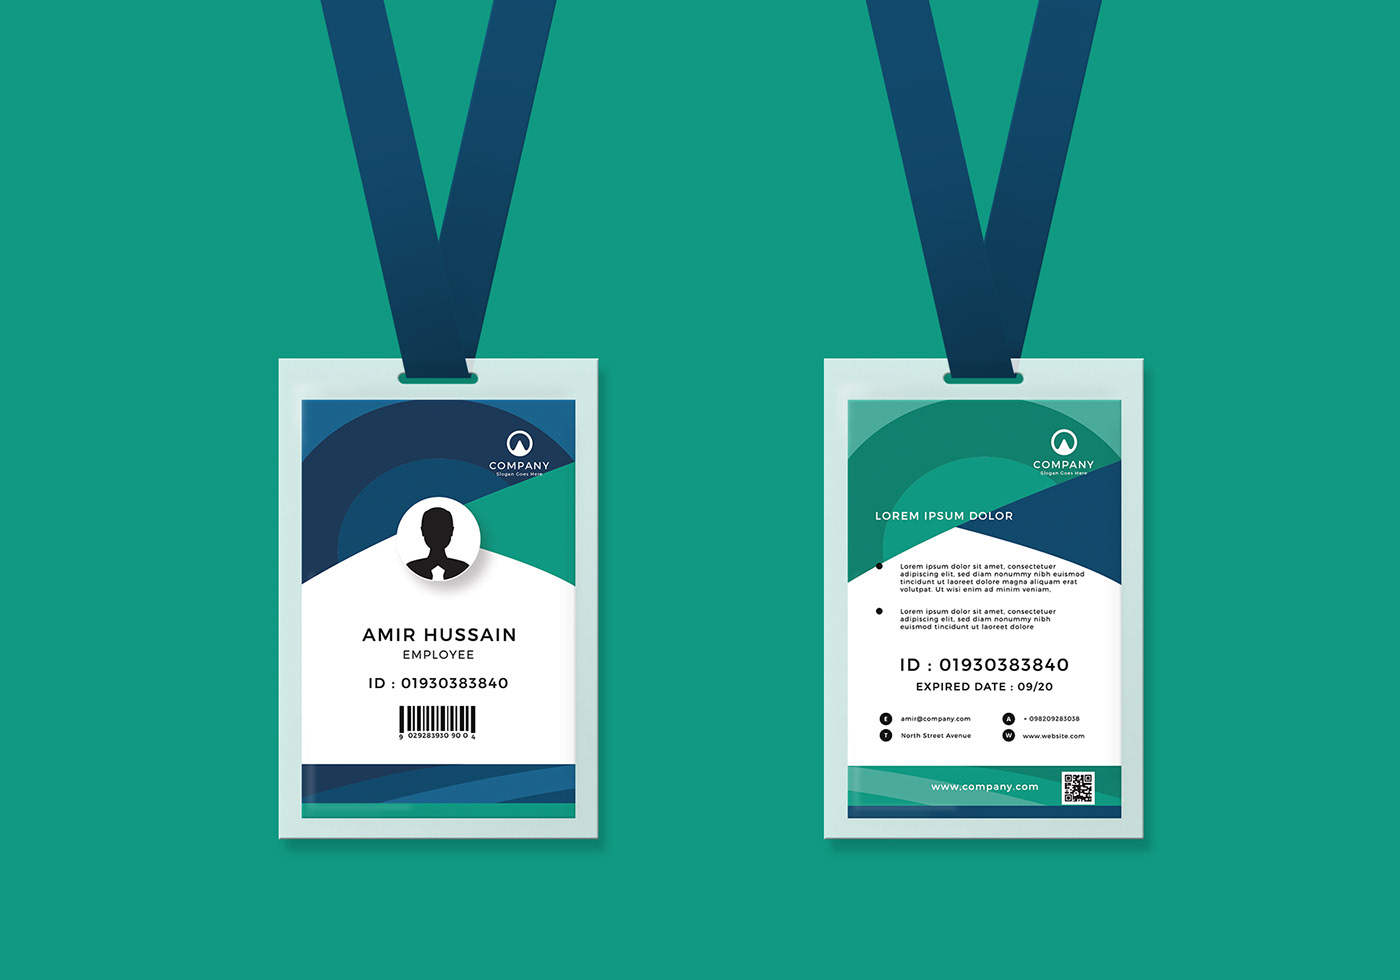 Free Download Corporate ID Card Template on Behance Regarding Template For Id Card Free Download